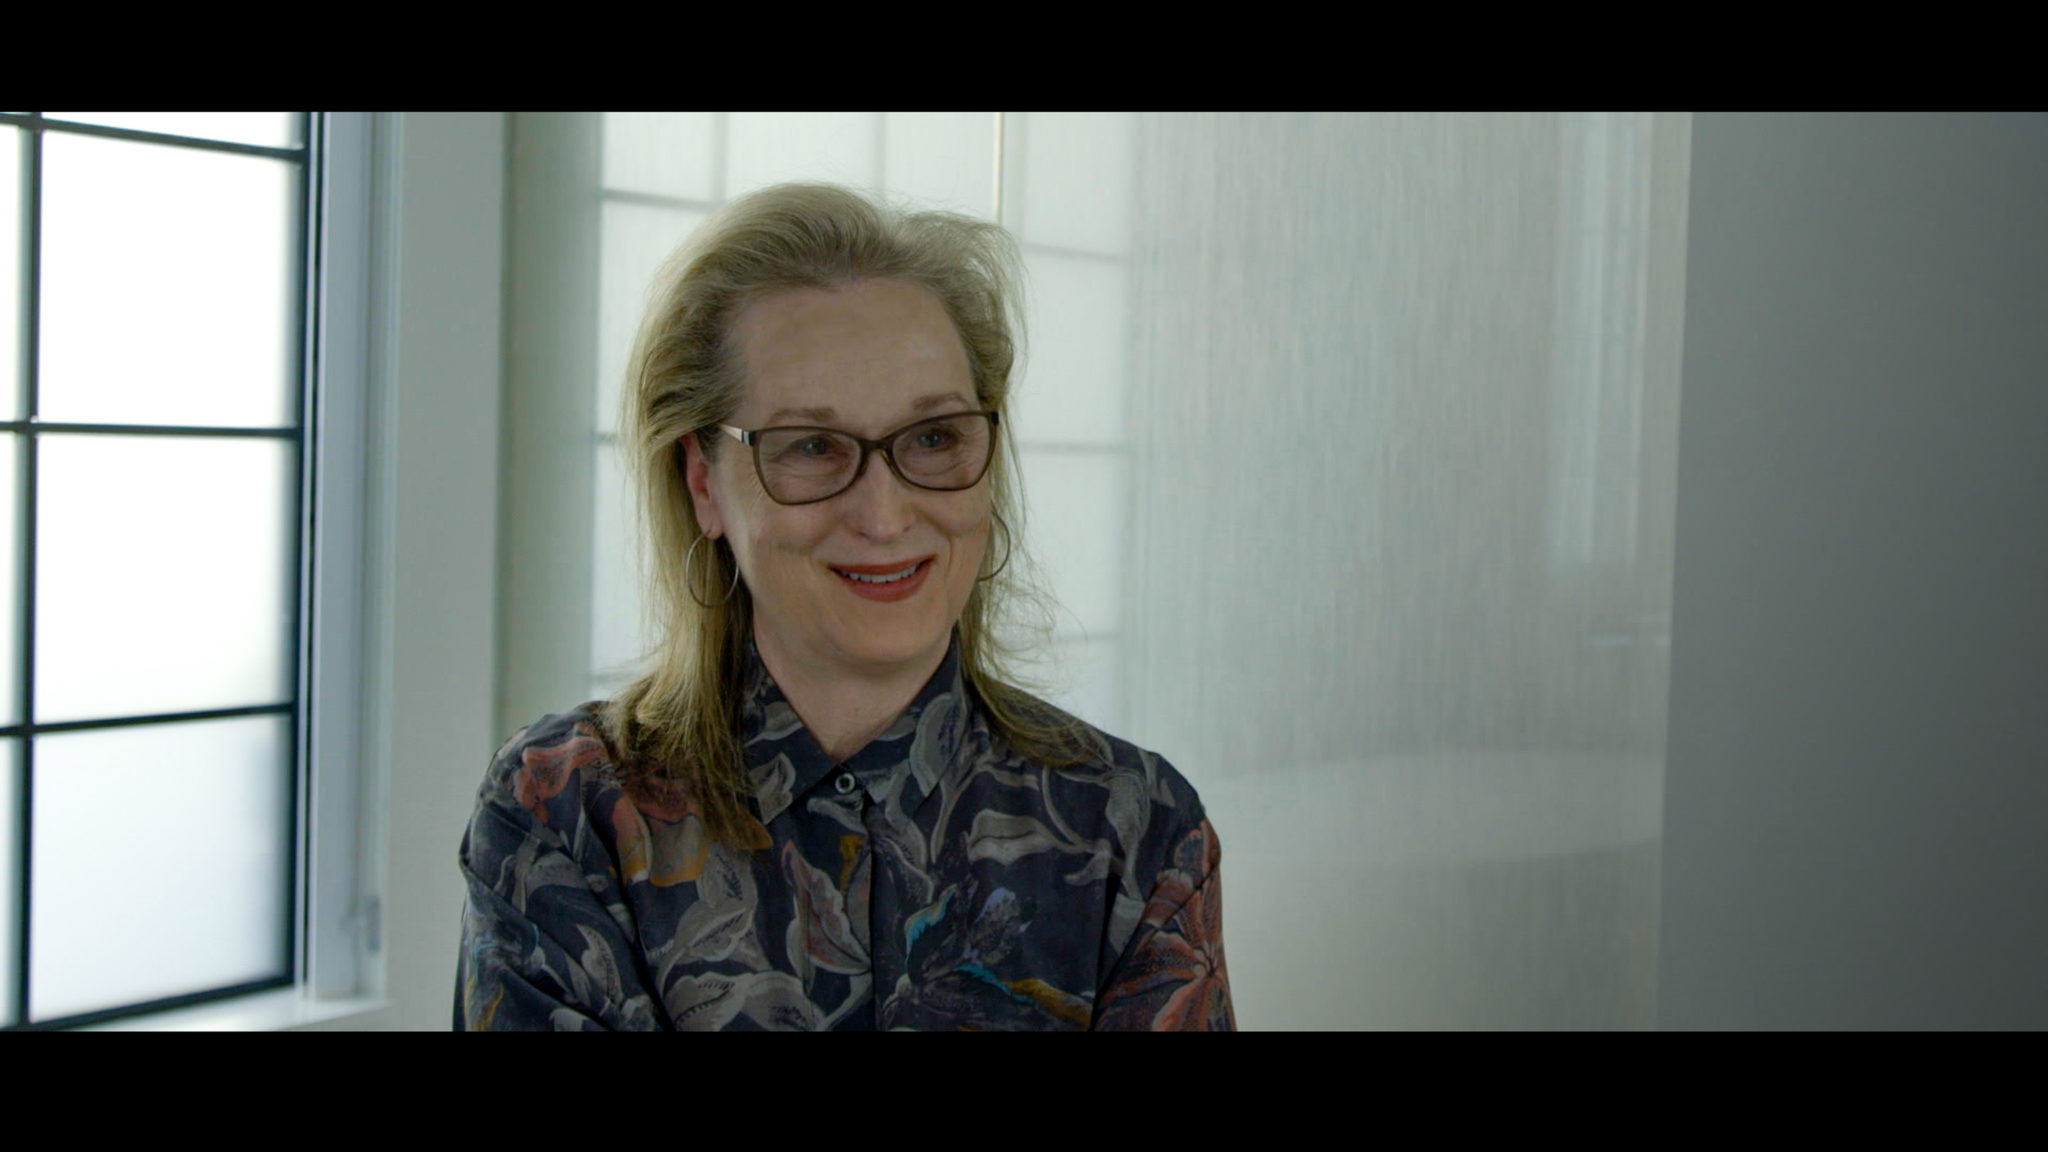 Meryl Streep in This Changes Everything